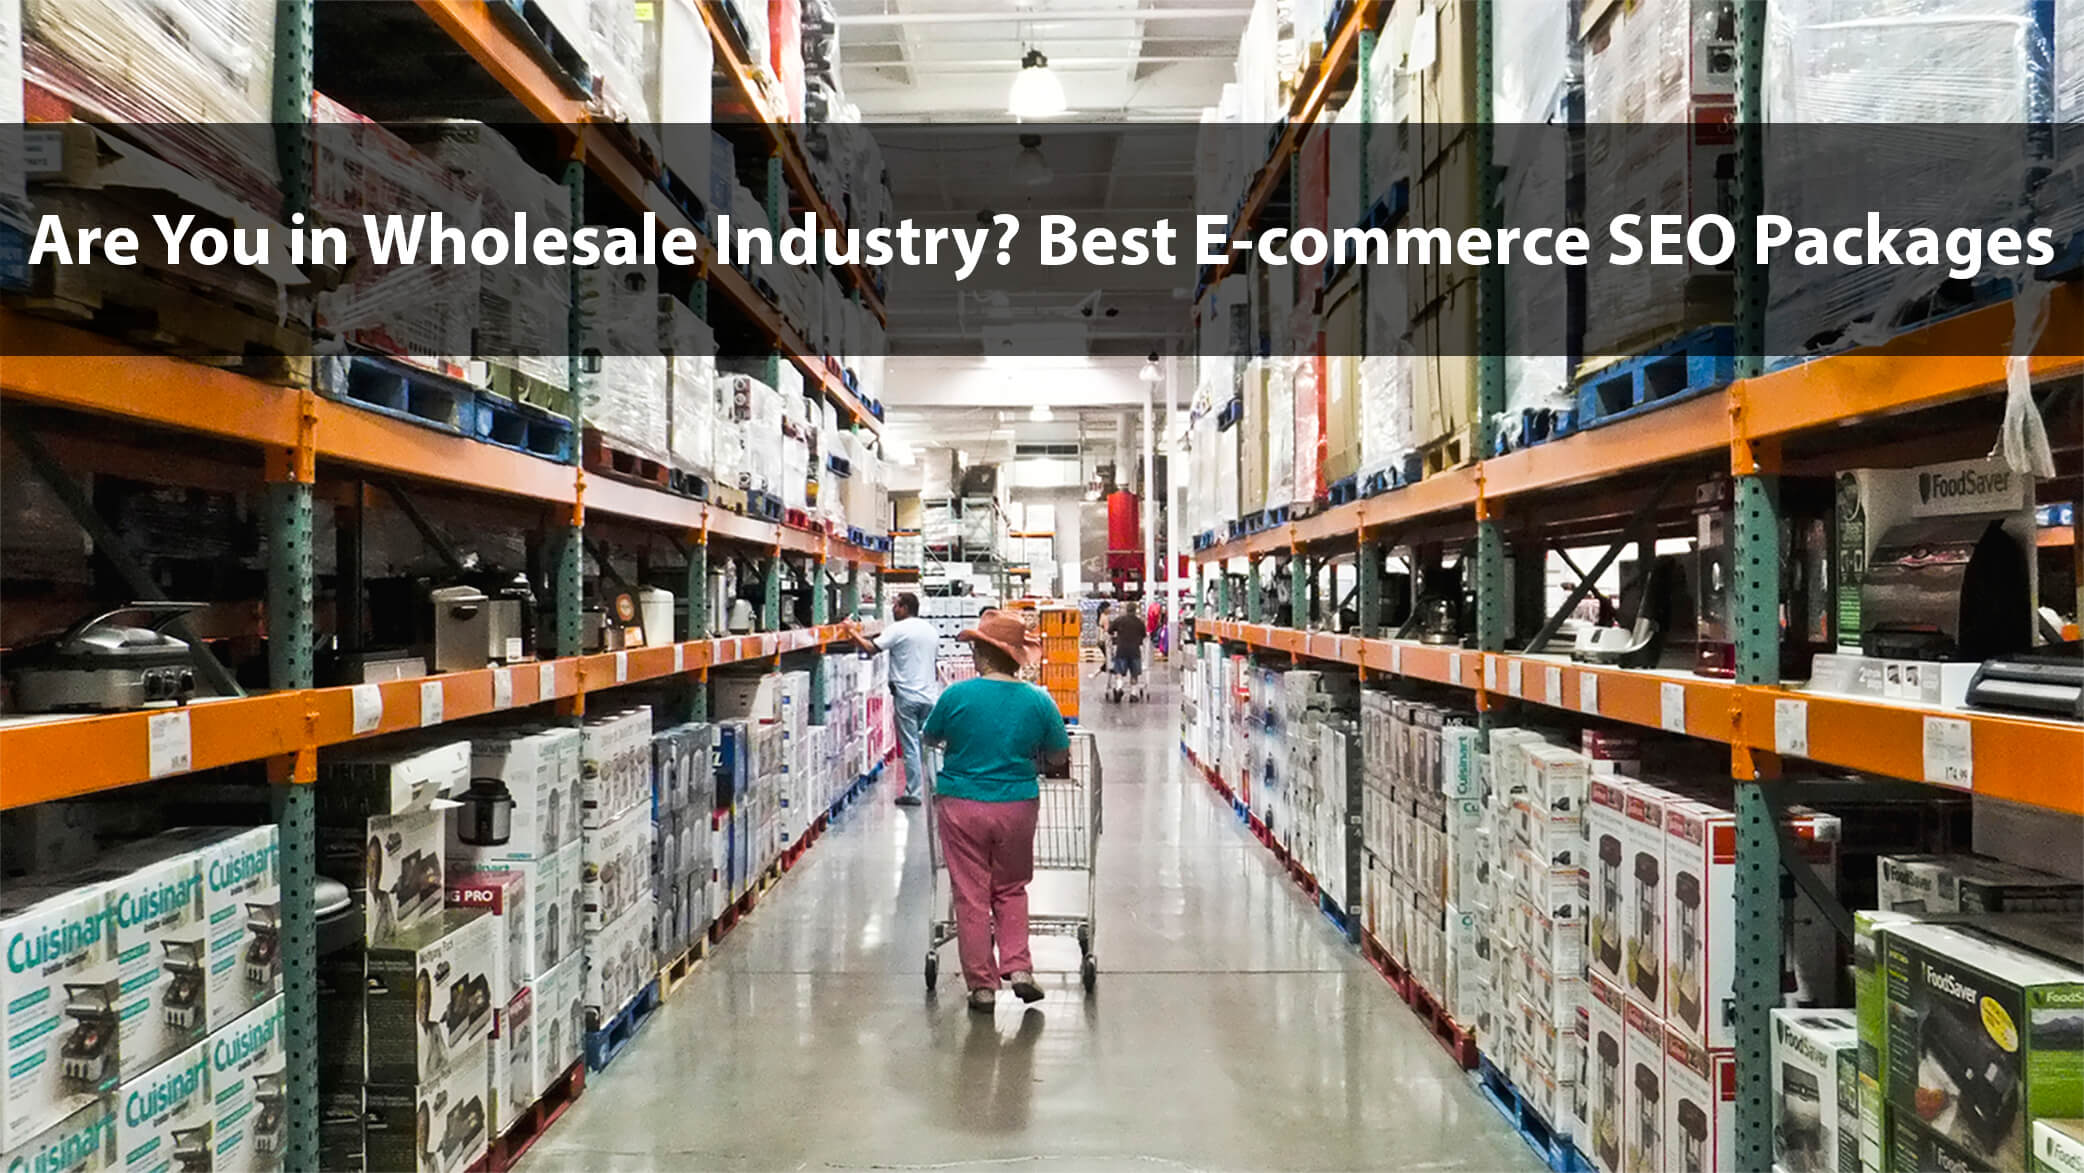 How To Choose Affordable E-commerce SEO Package For Wholesale Industry?